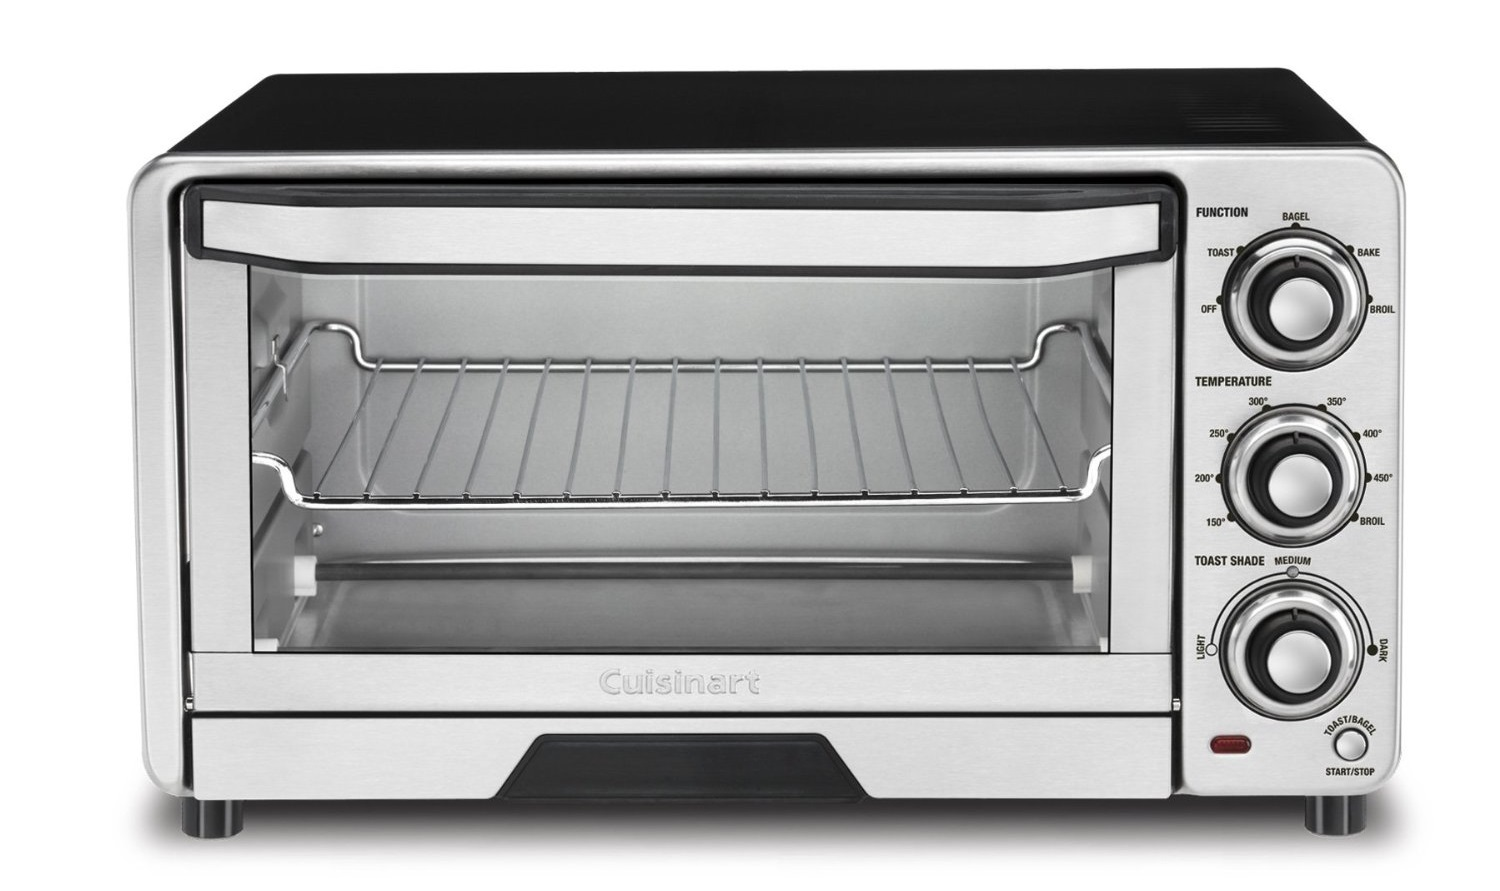 Cuisinart Tob 40 Review A Good Branded Toaster Oven